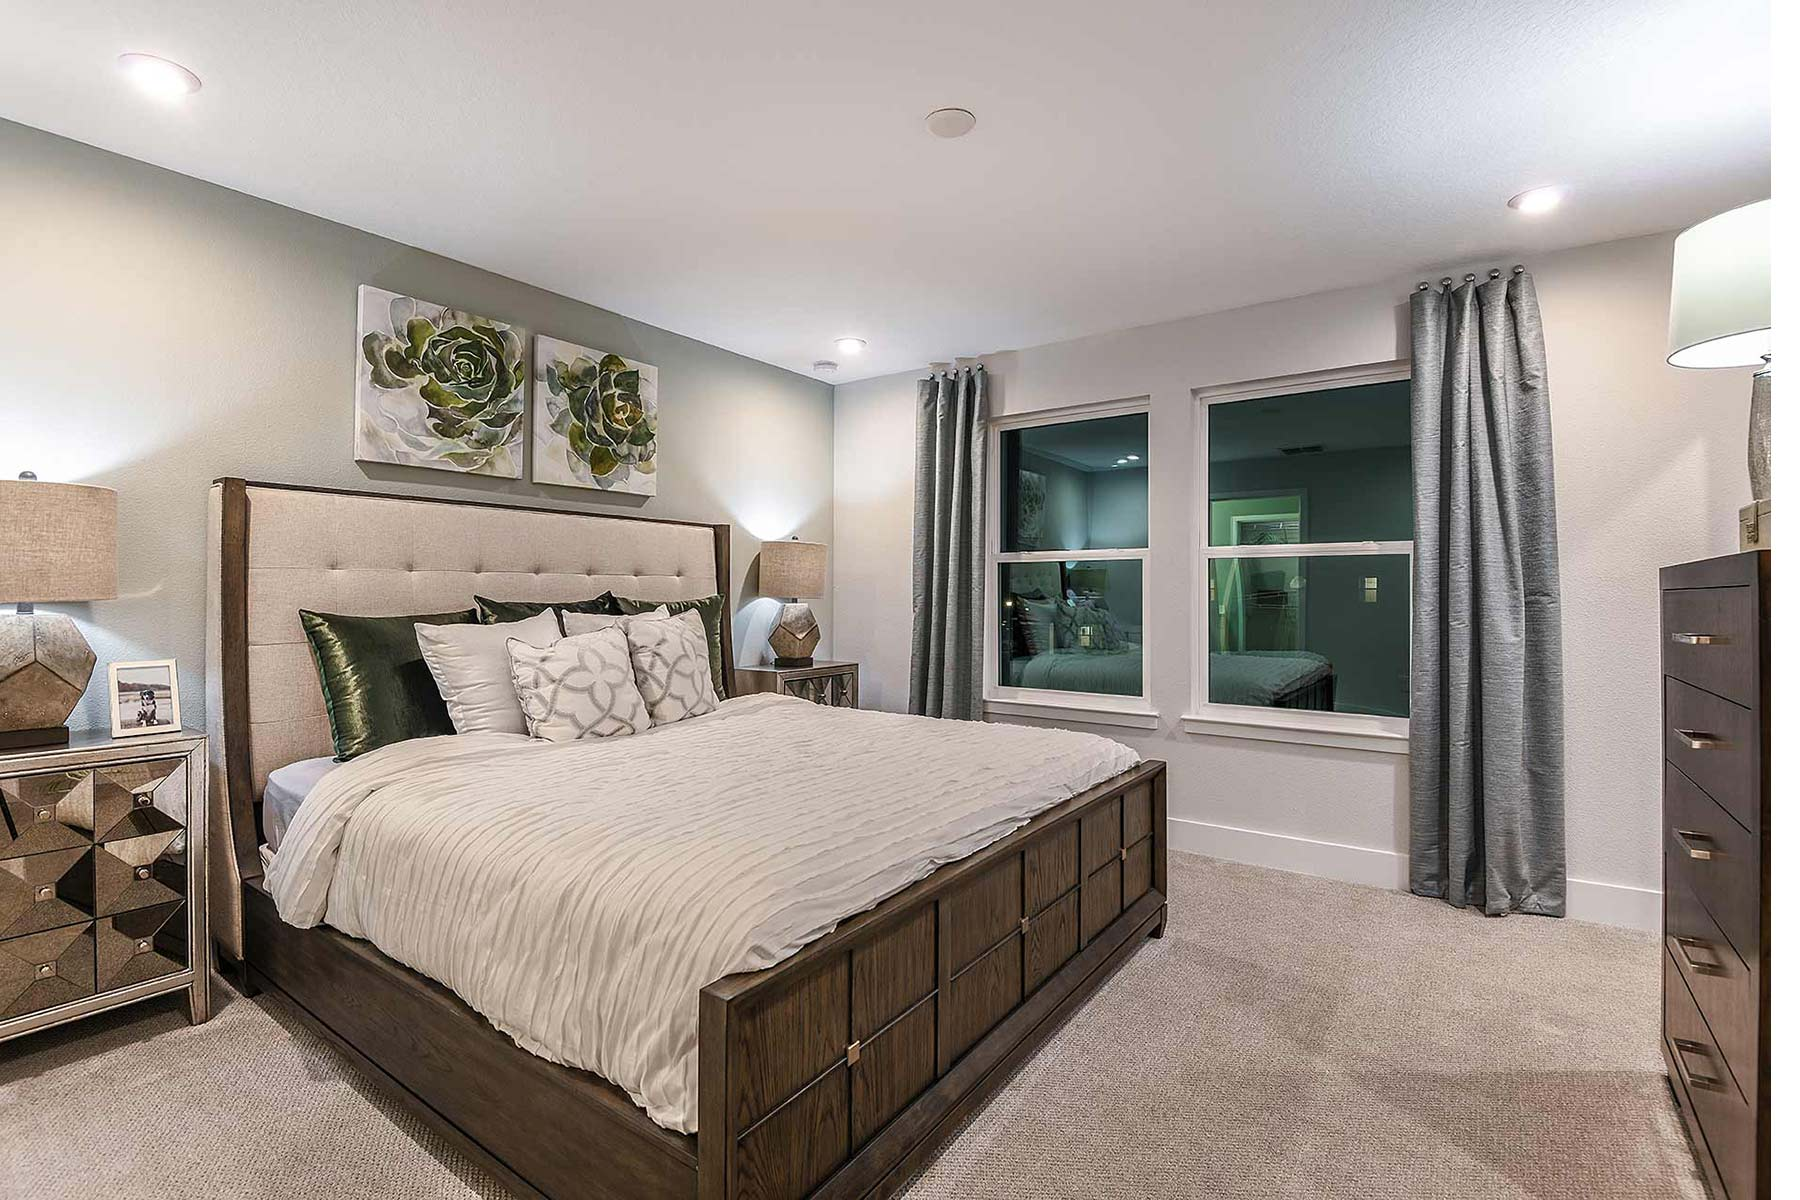 Citron Grove Bedroom in Citrus Park Florida by Mattamy Homes